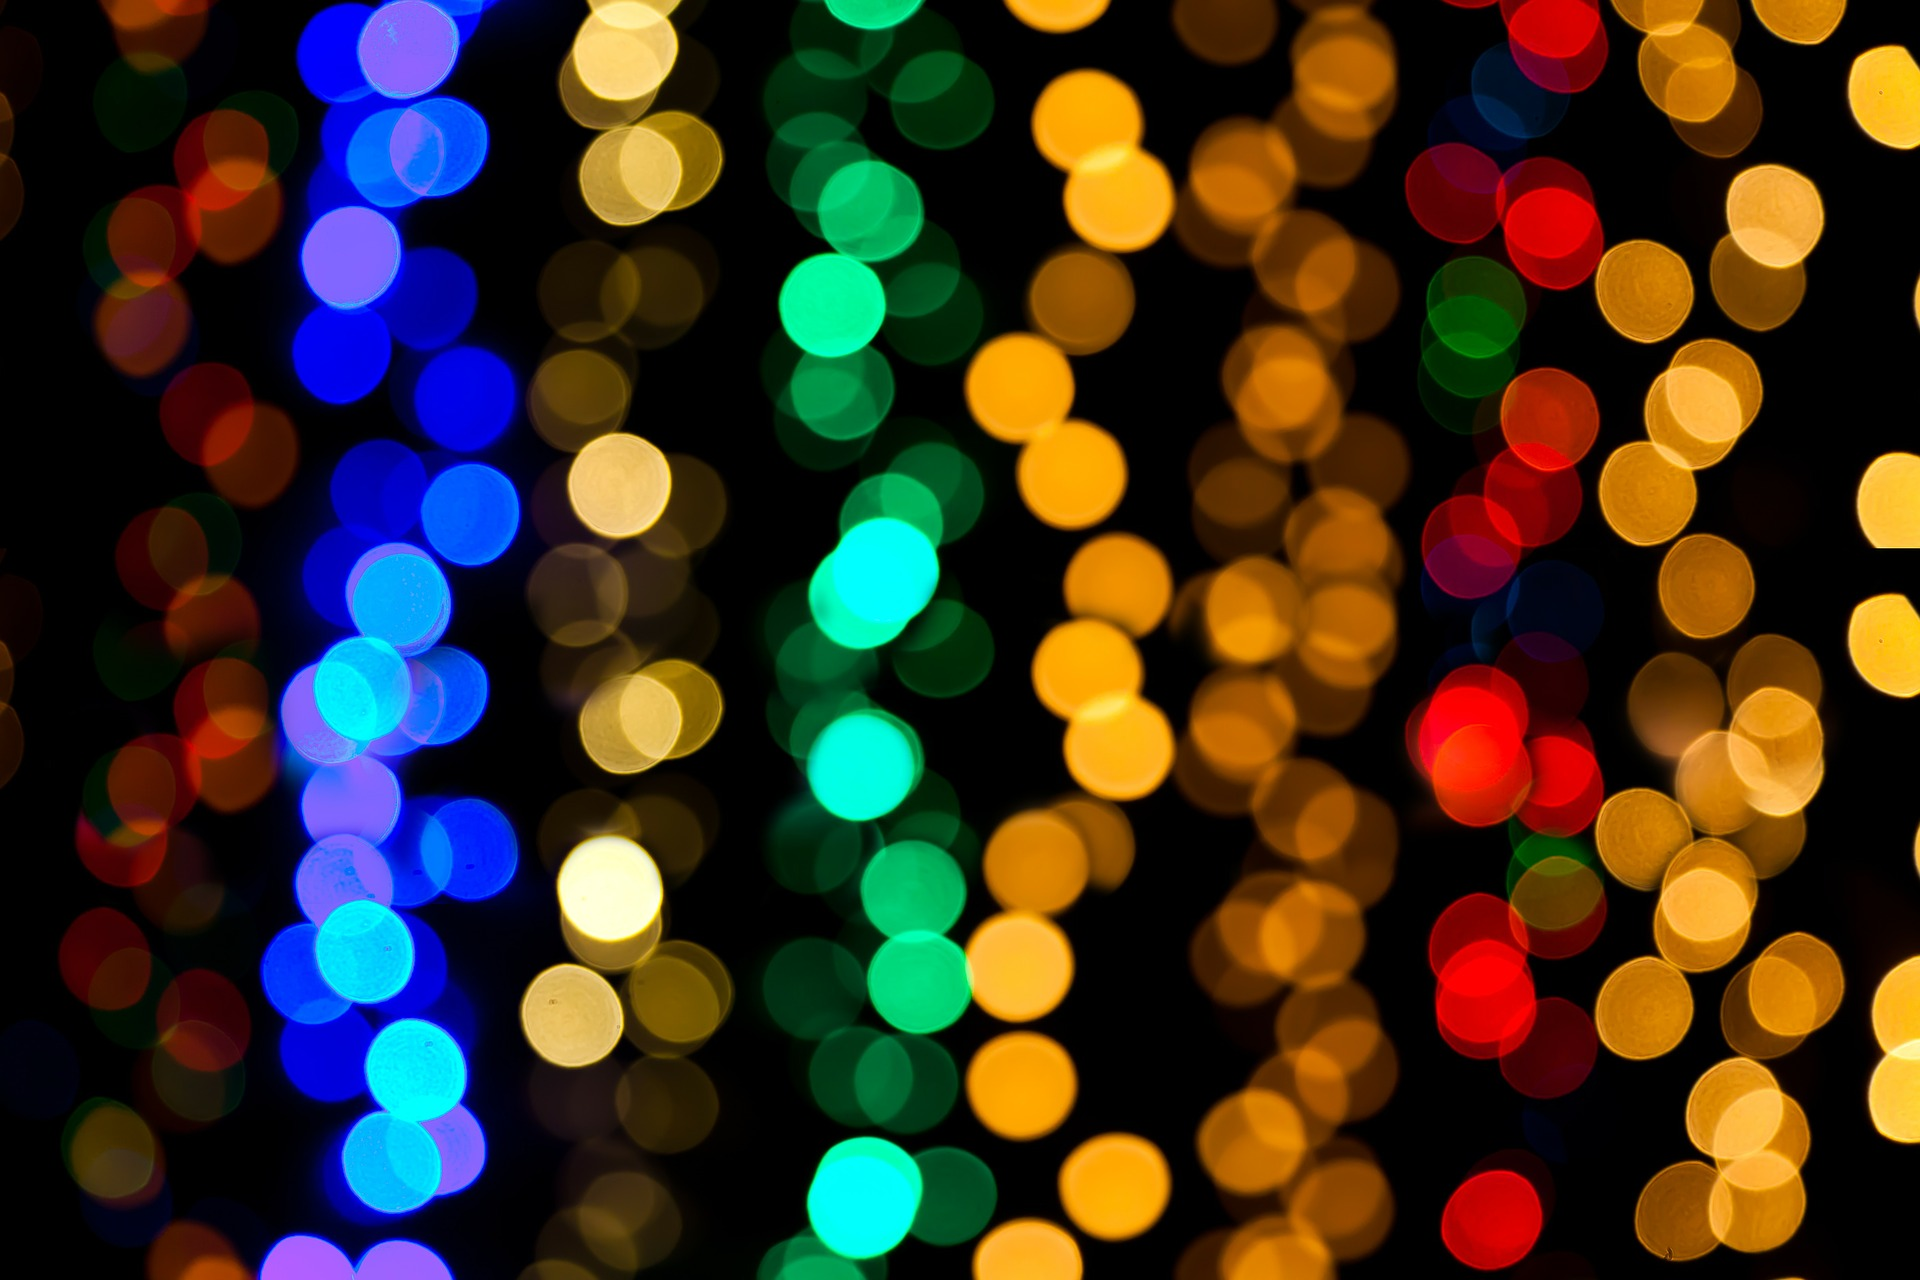 Christmas Lights Spectacular - 2020 Christmas Events for the Family